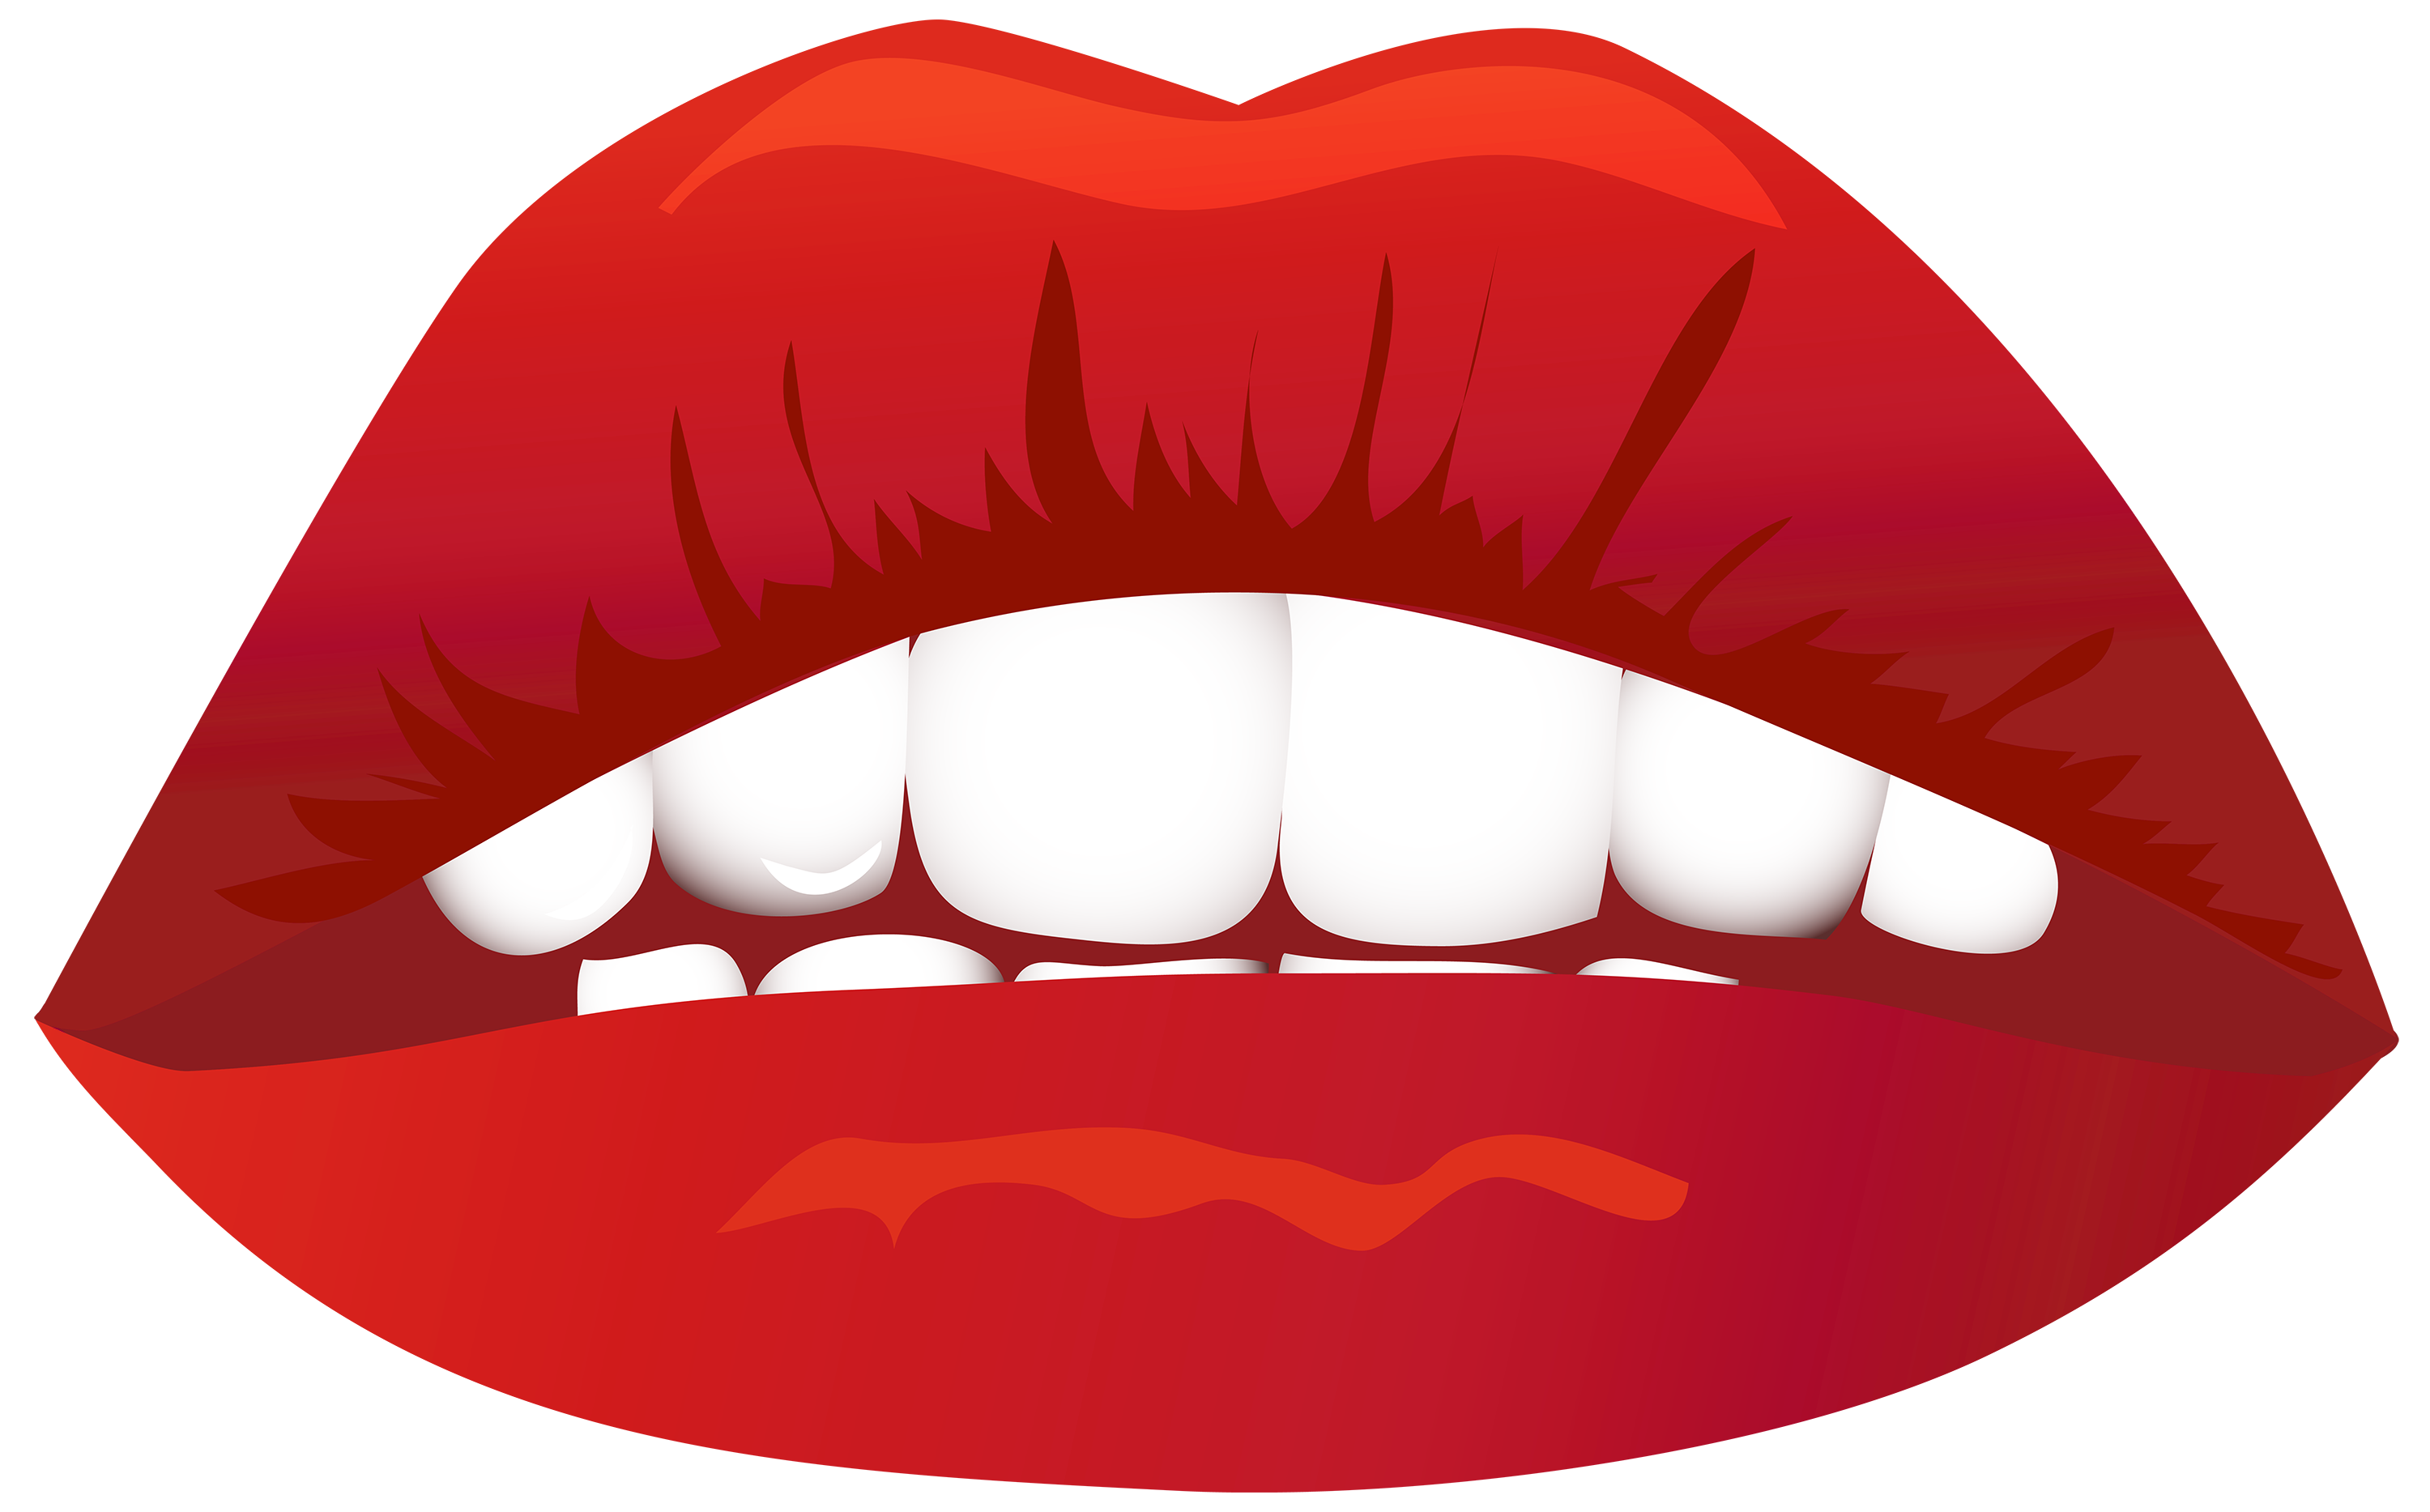 Lips PNG Clipart Image.